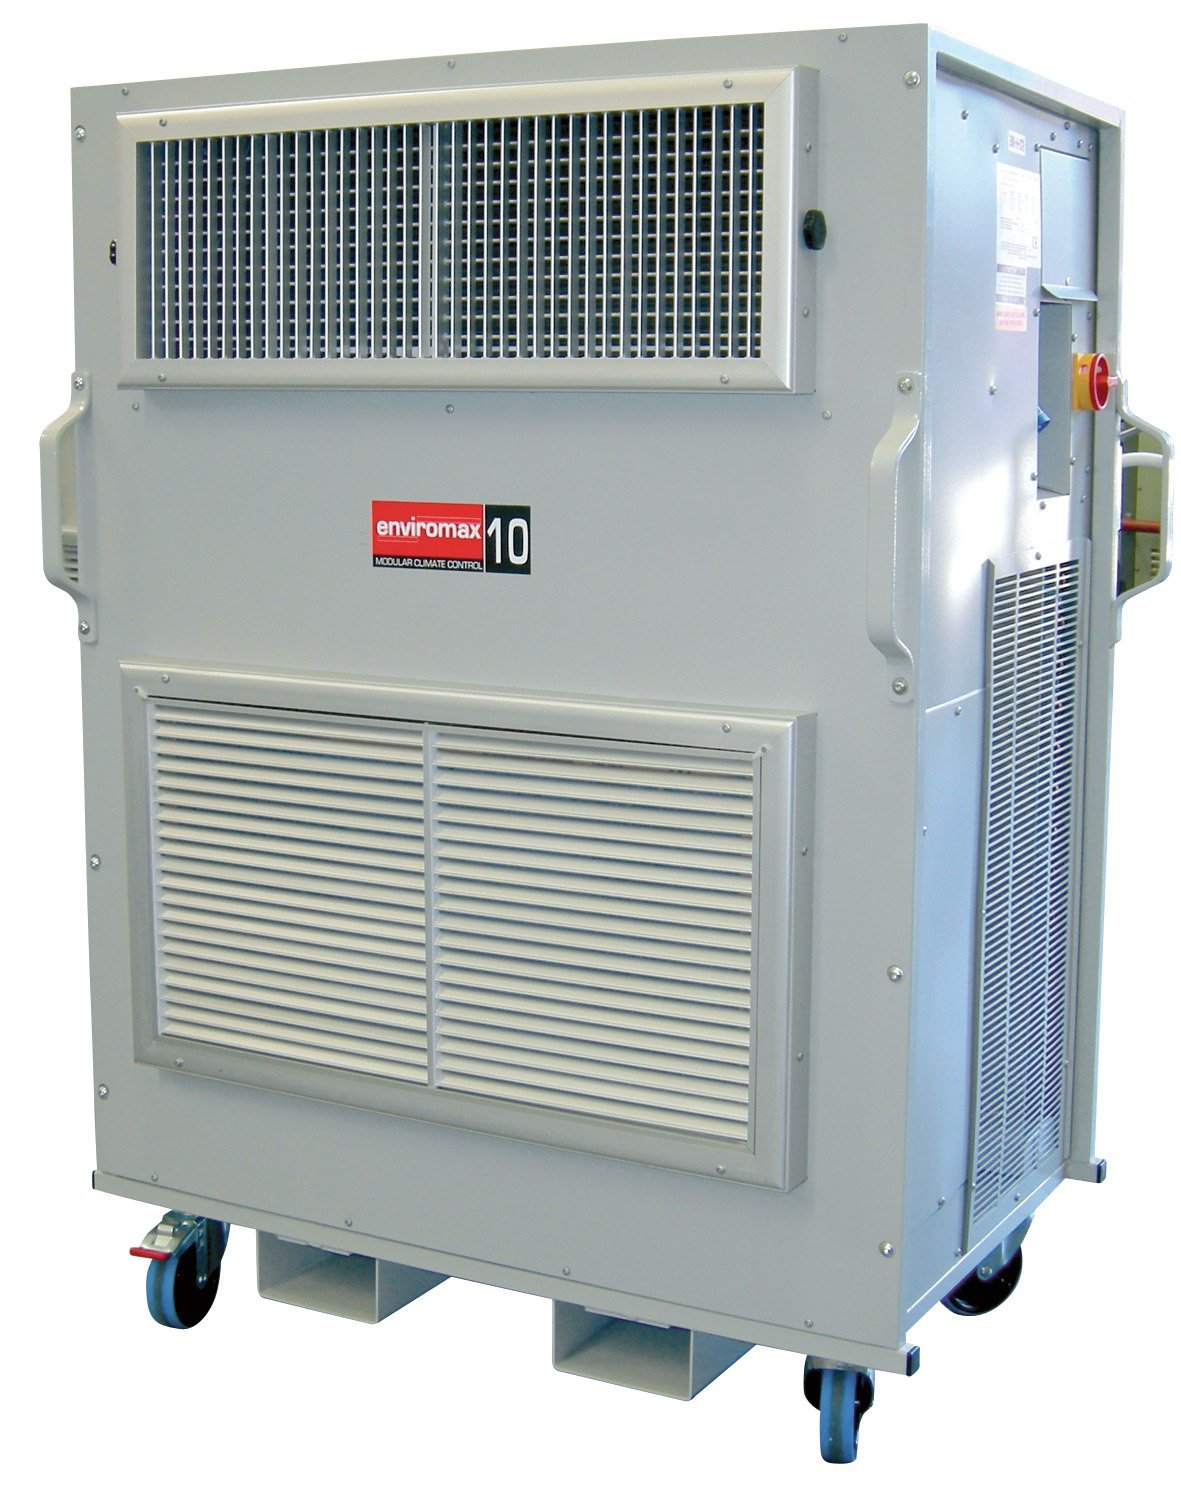 #AB2020 ENVIROMAX10 10kw 36 000btu Industrial Portable Air  Best 11553 Commercial Air Conditioner Units photos with 1181x1490 px on helpvideos.info - Air Conditioners, Air Coolers and more